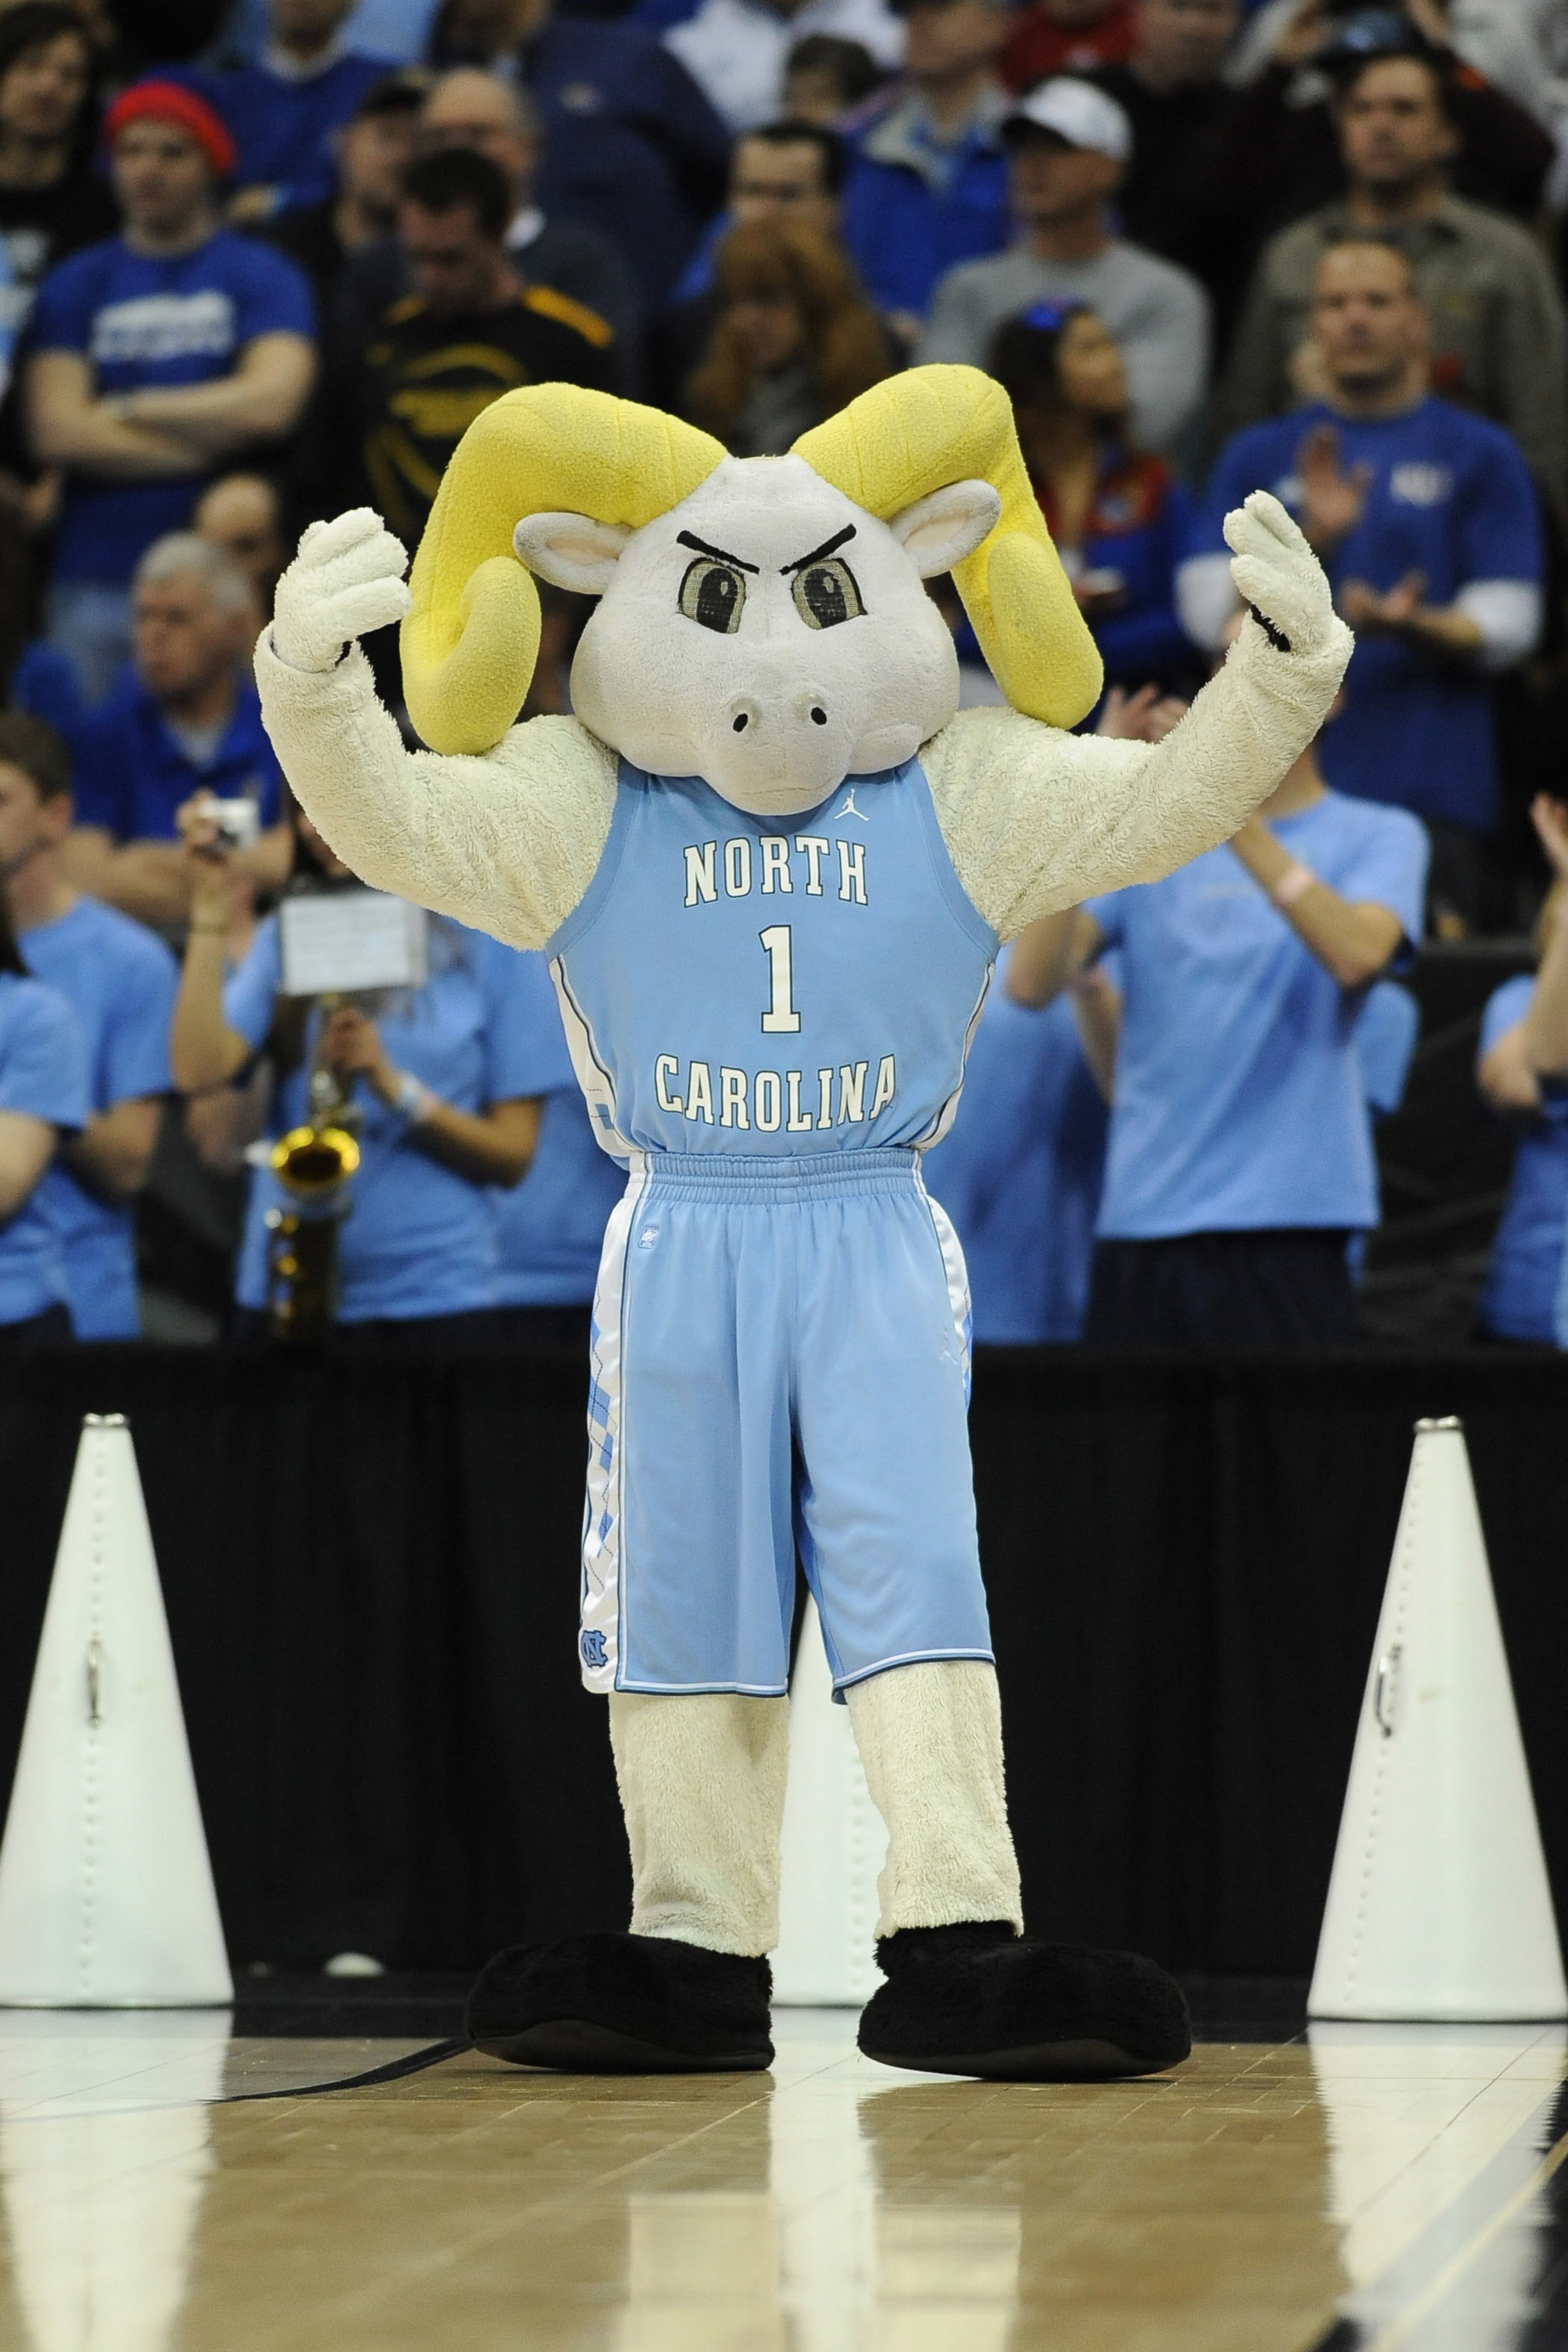 North Carolina is tops in NBA Draft production since 1987